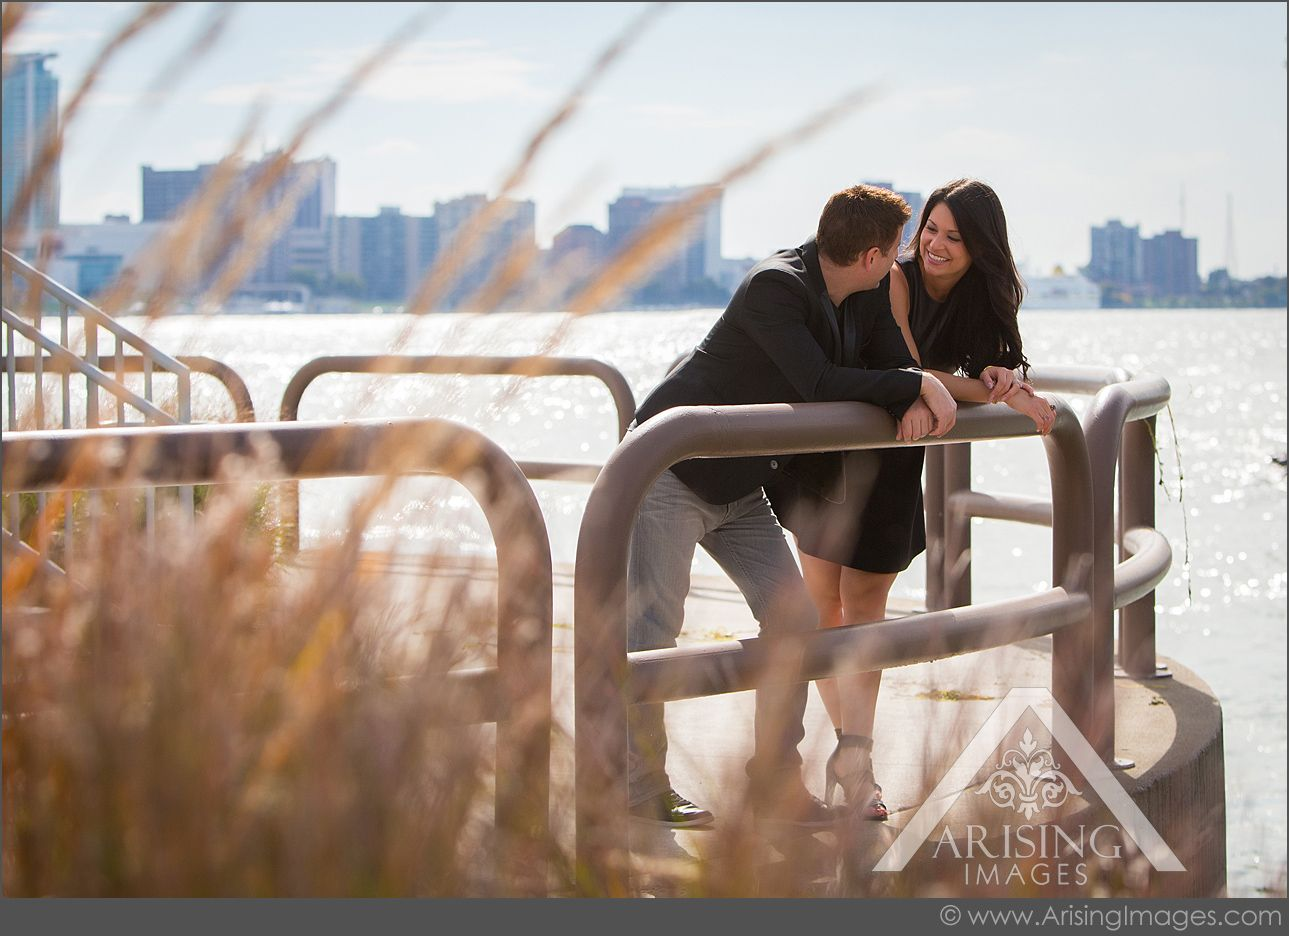 Cute natural engagement picture in Detroit. #arisingimages #michigan #engaged #couple #natural #photoshoot #river